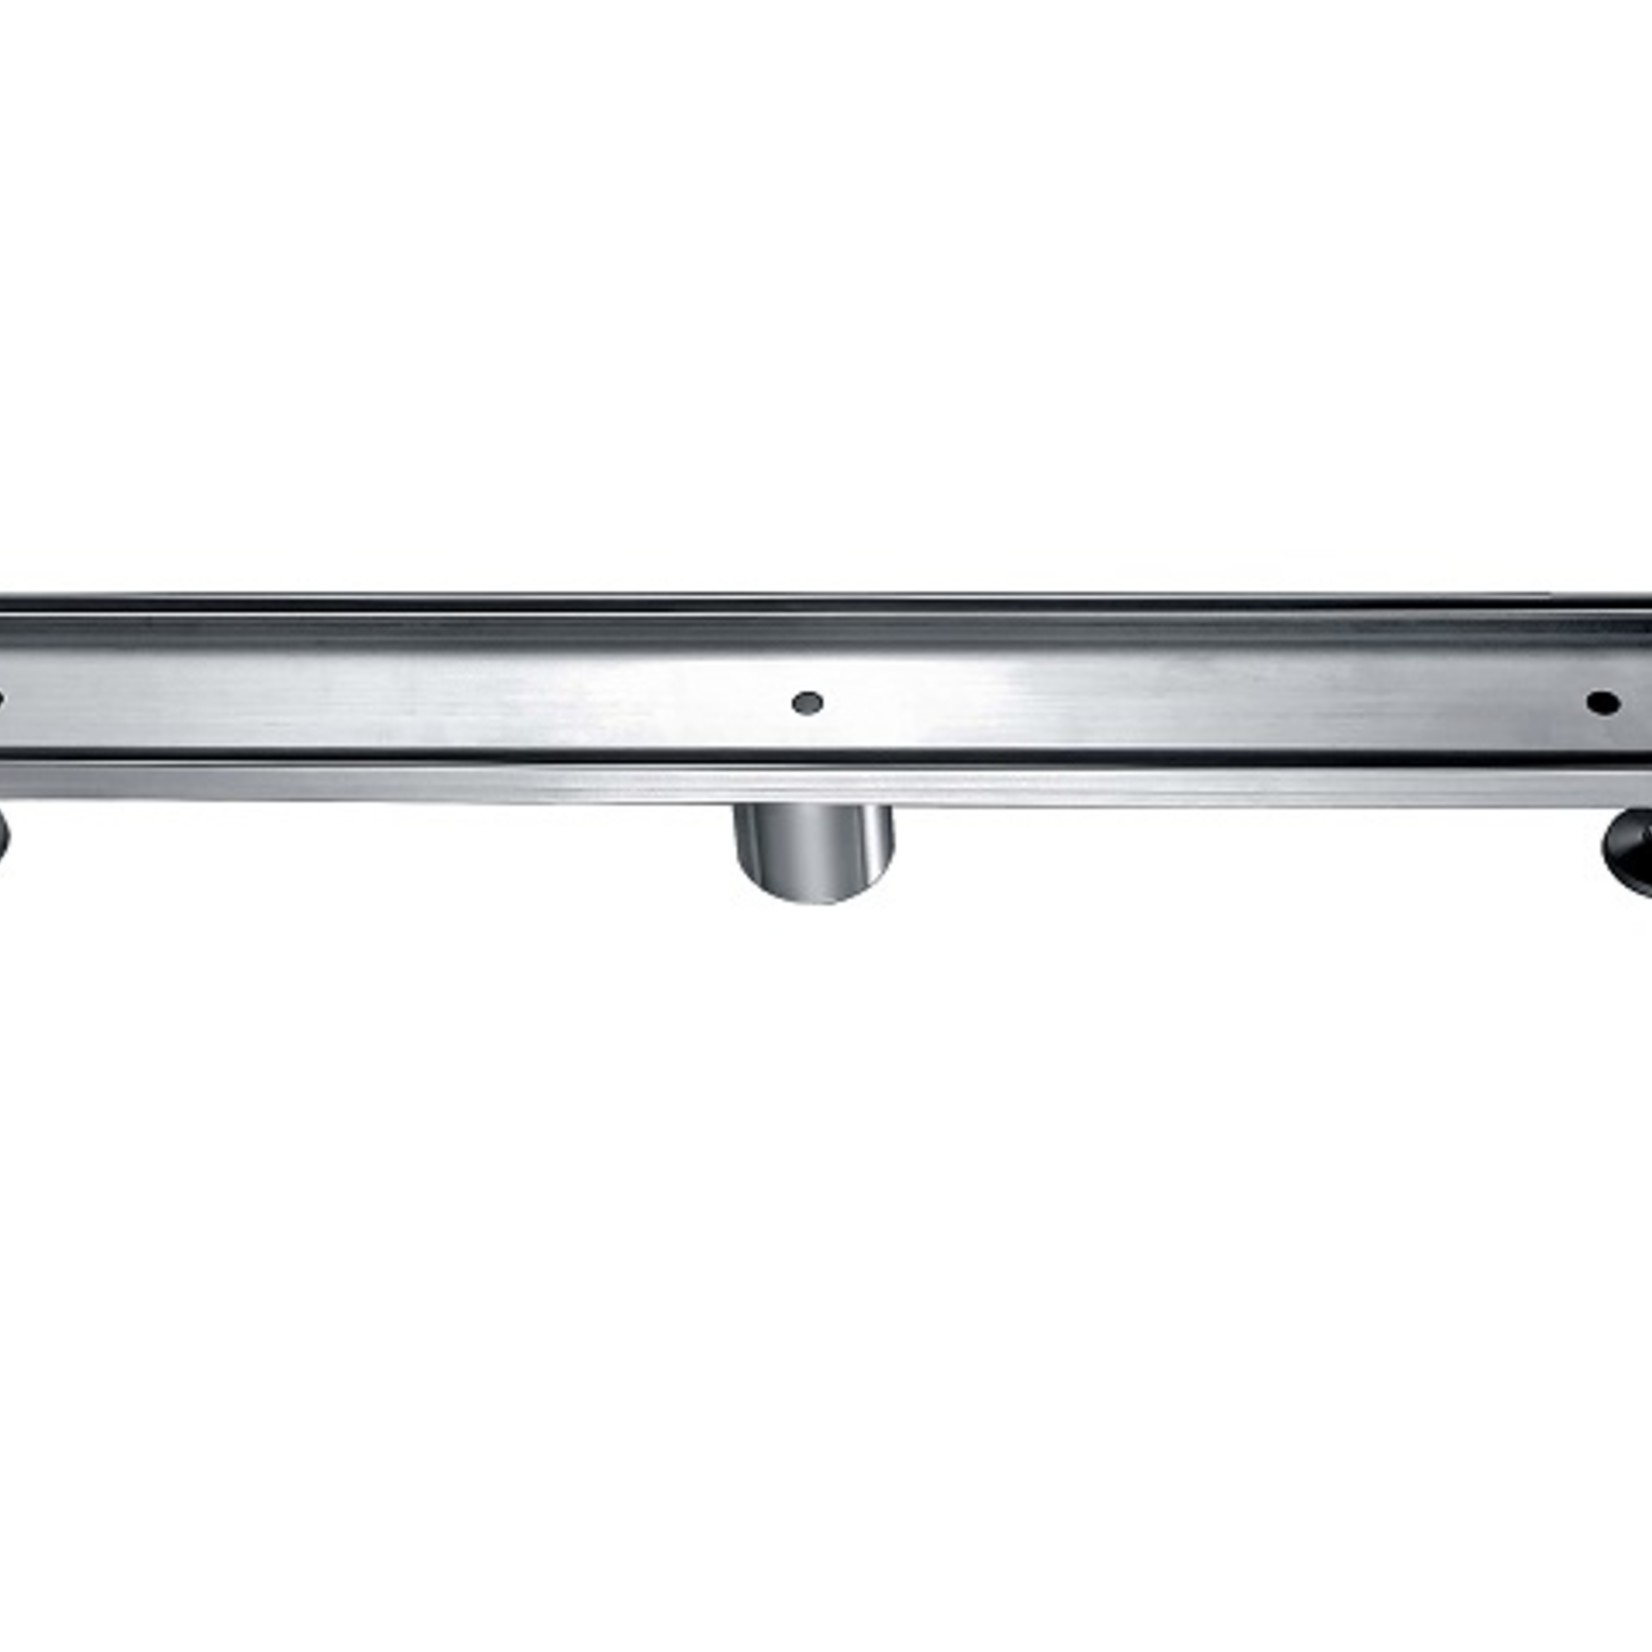 Stainless steel linear drain LCO model